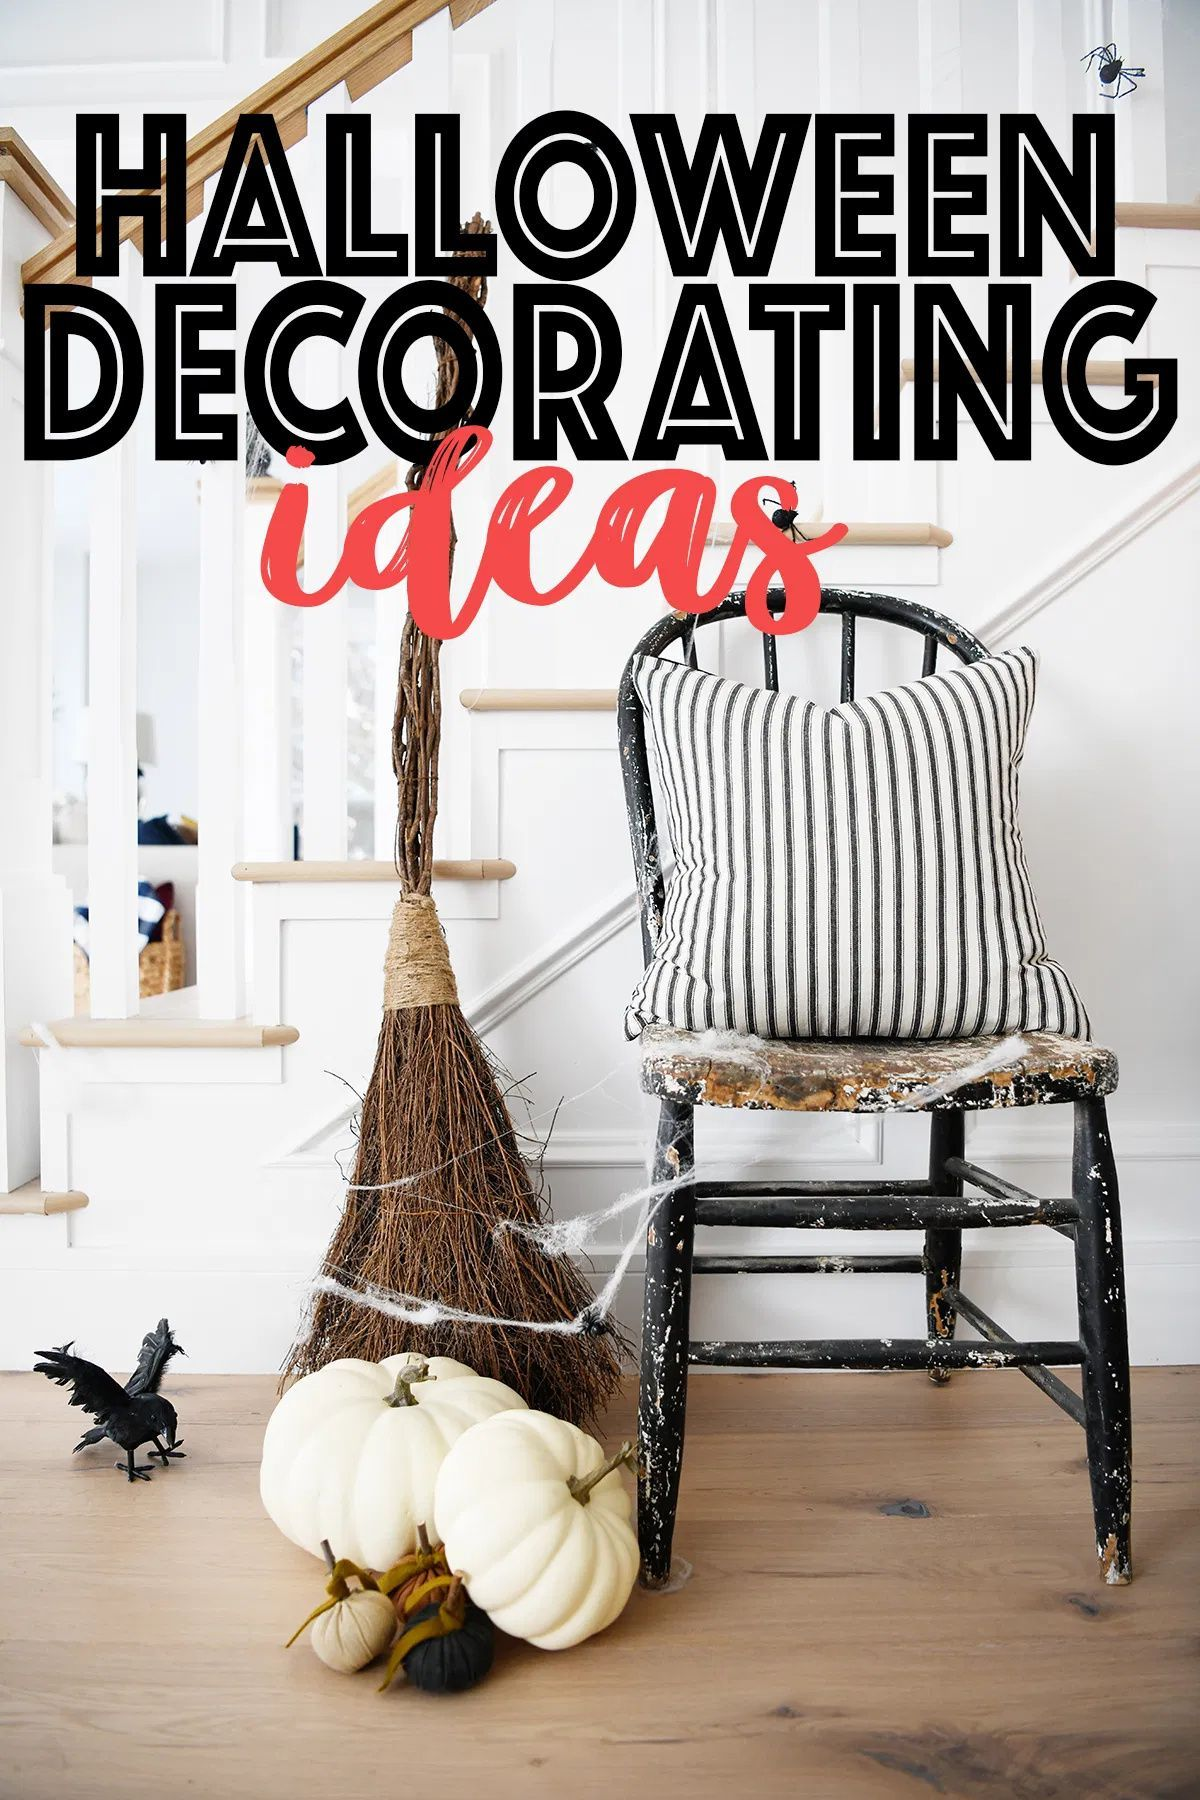 Cute and perfectly spooky Halloween home decor ideas. #Halloween #HalloweenDecor #Decor #PinkPeppermintDesign